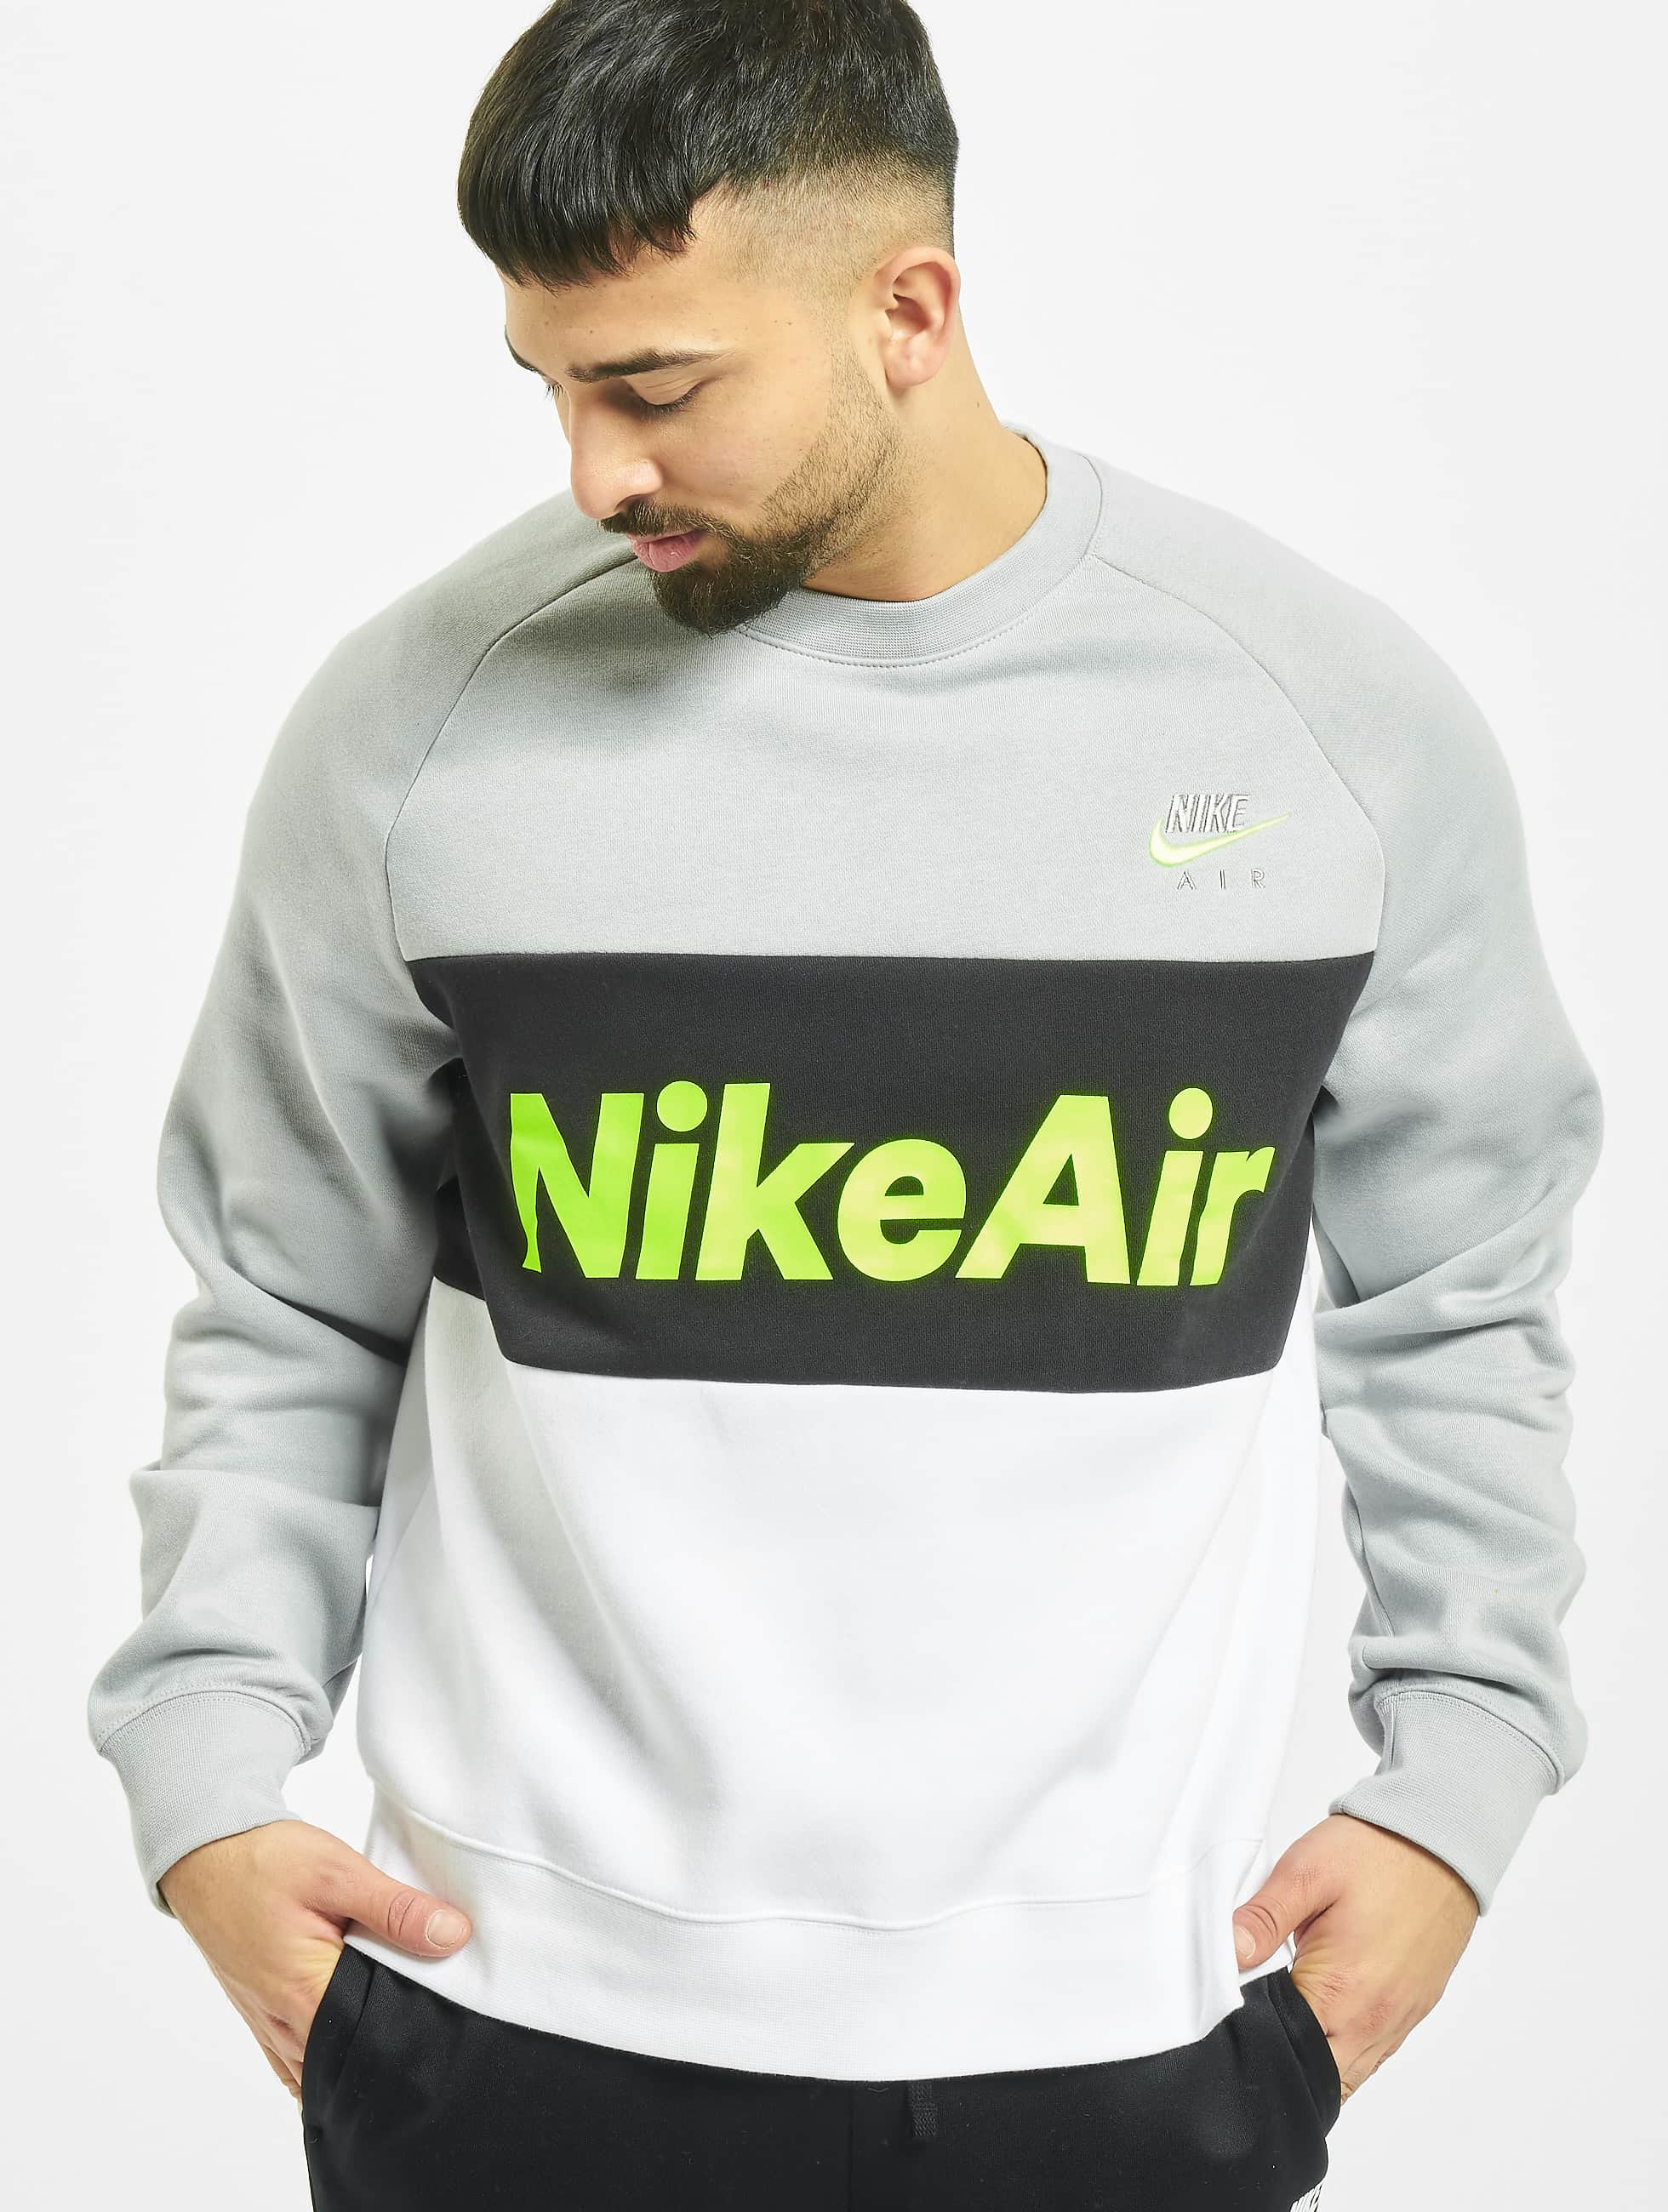 Nike Air Crew Fleece Sweatshirt Lt Smoke GreyWhiteBlackVolt